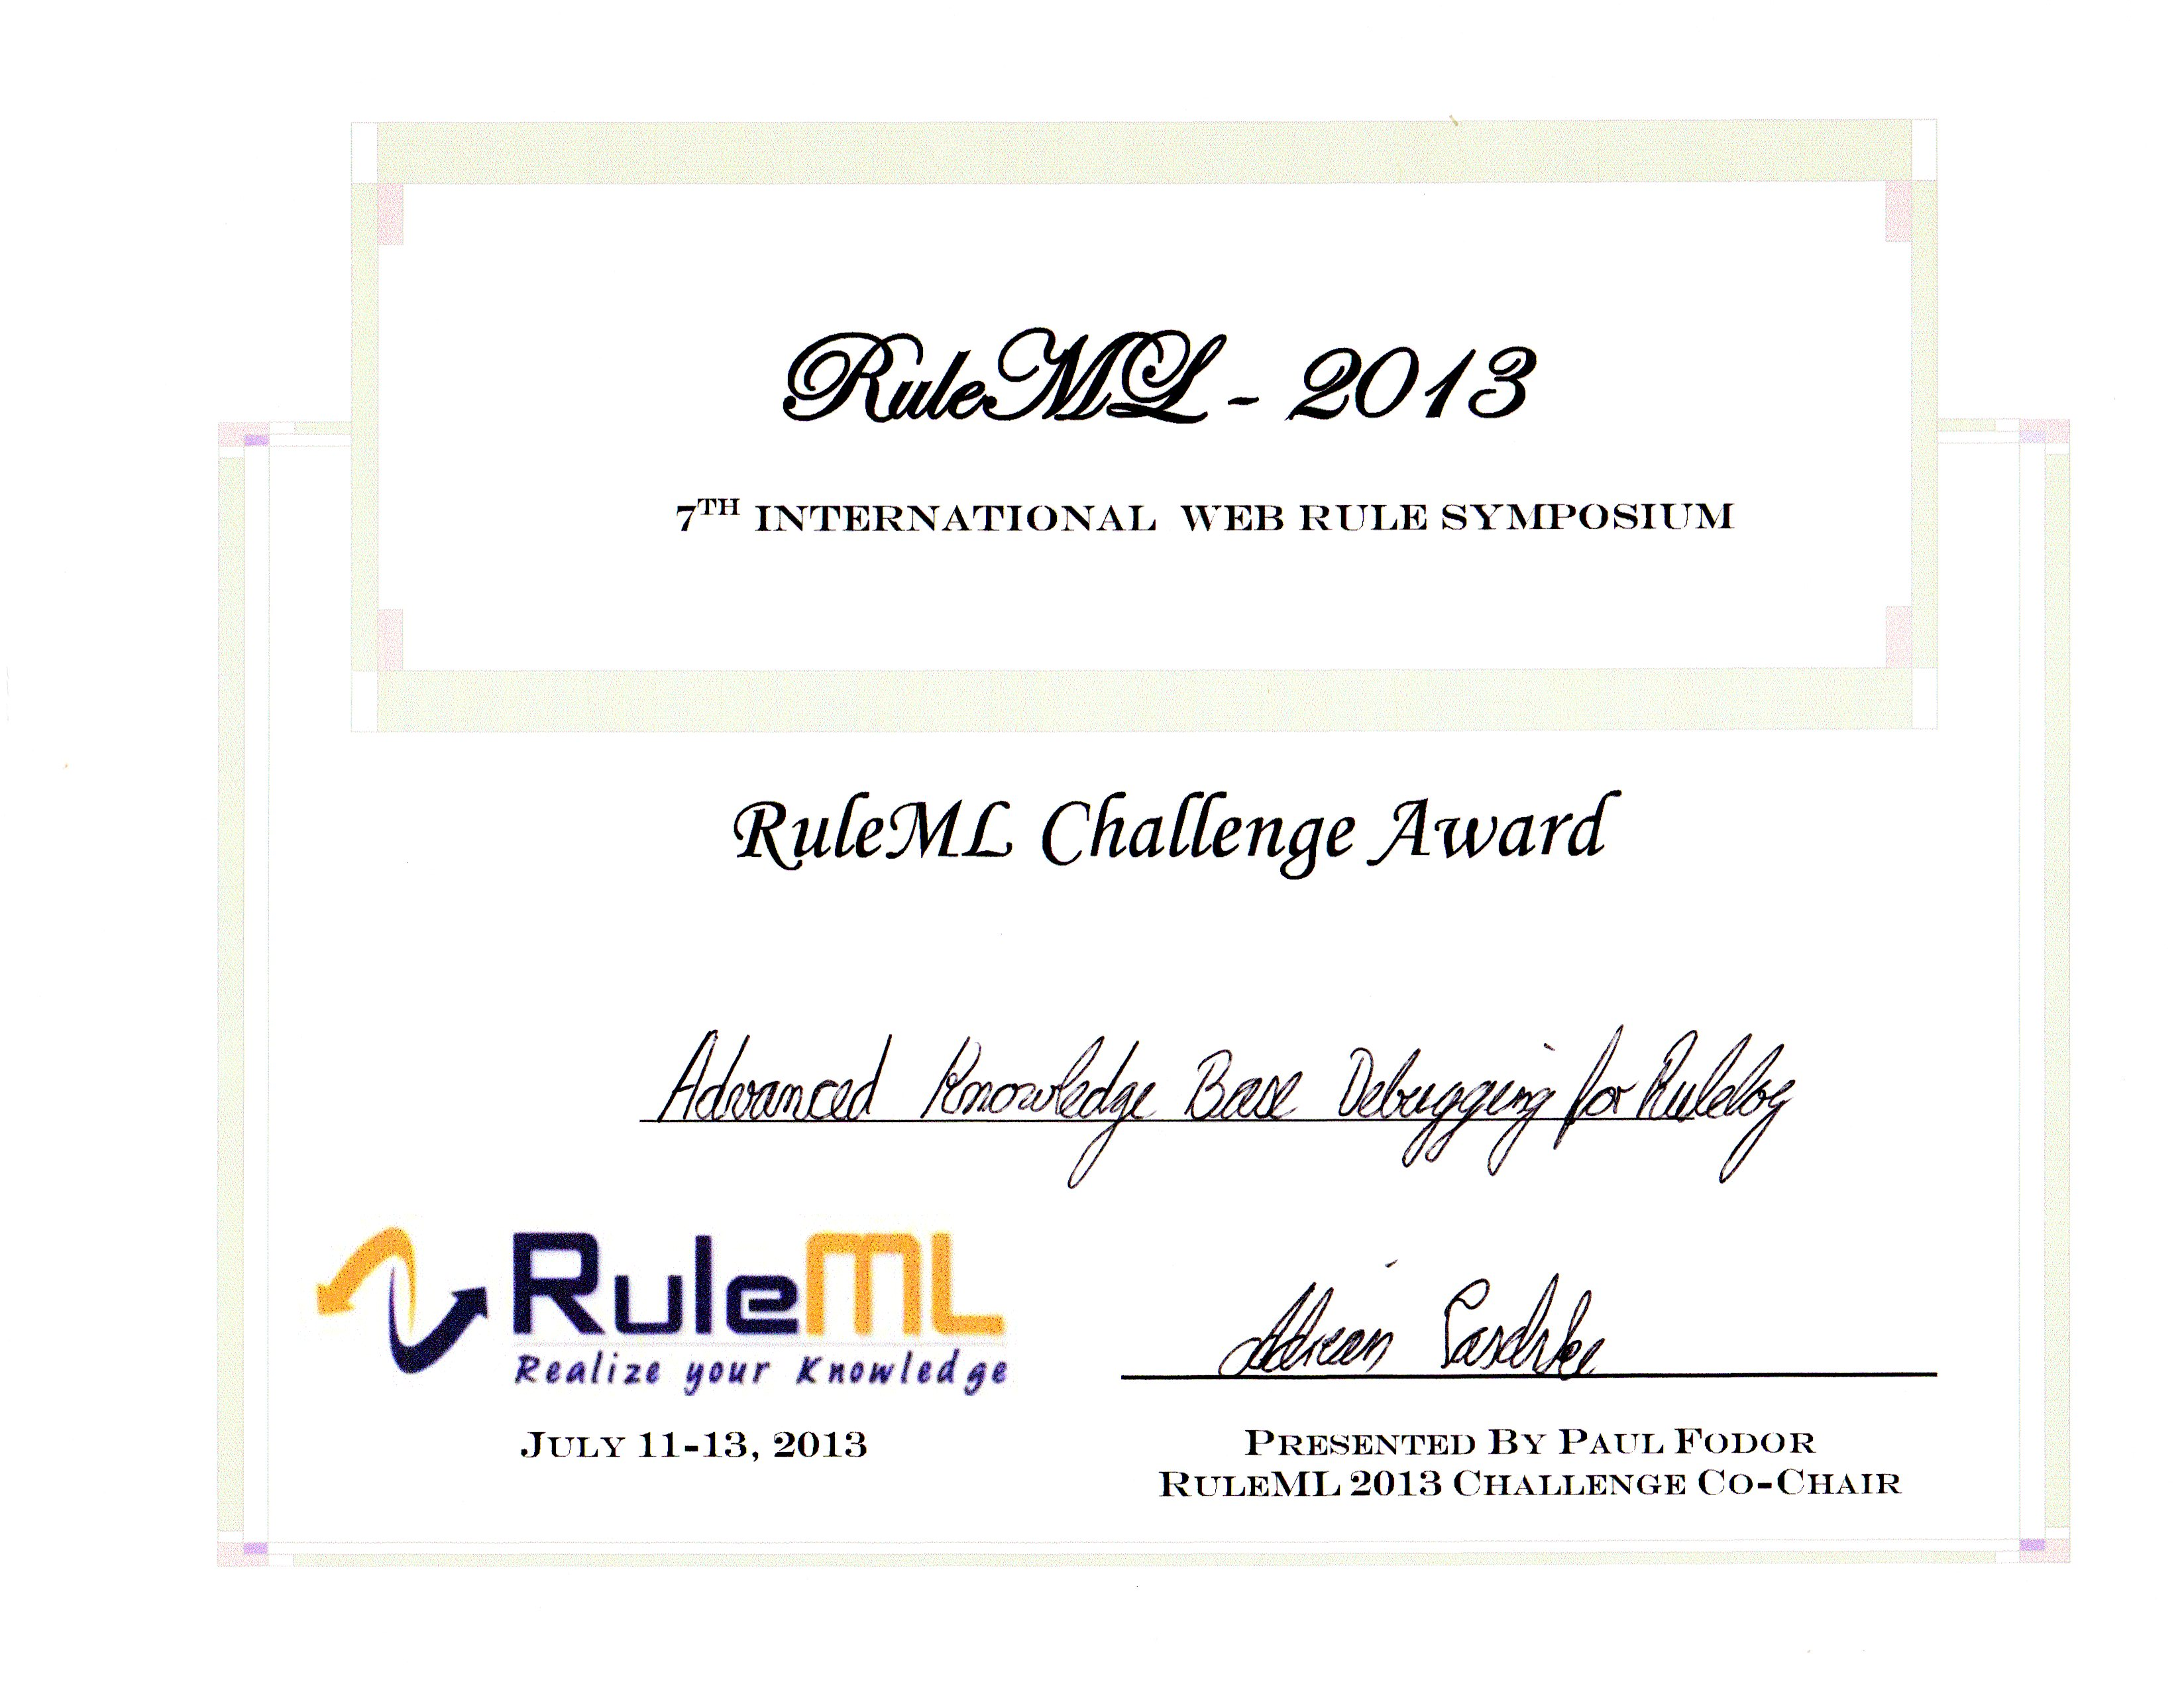 Rulelog system presentation wins Award at RuleML 2013